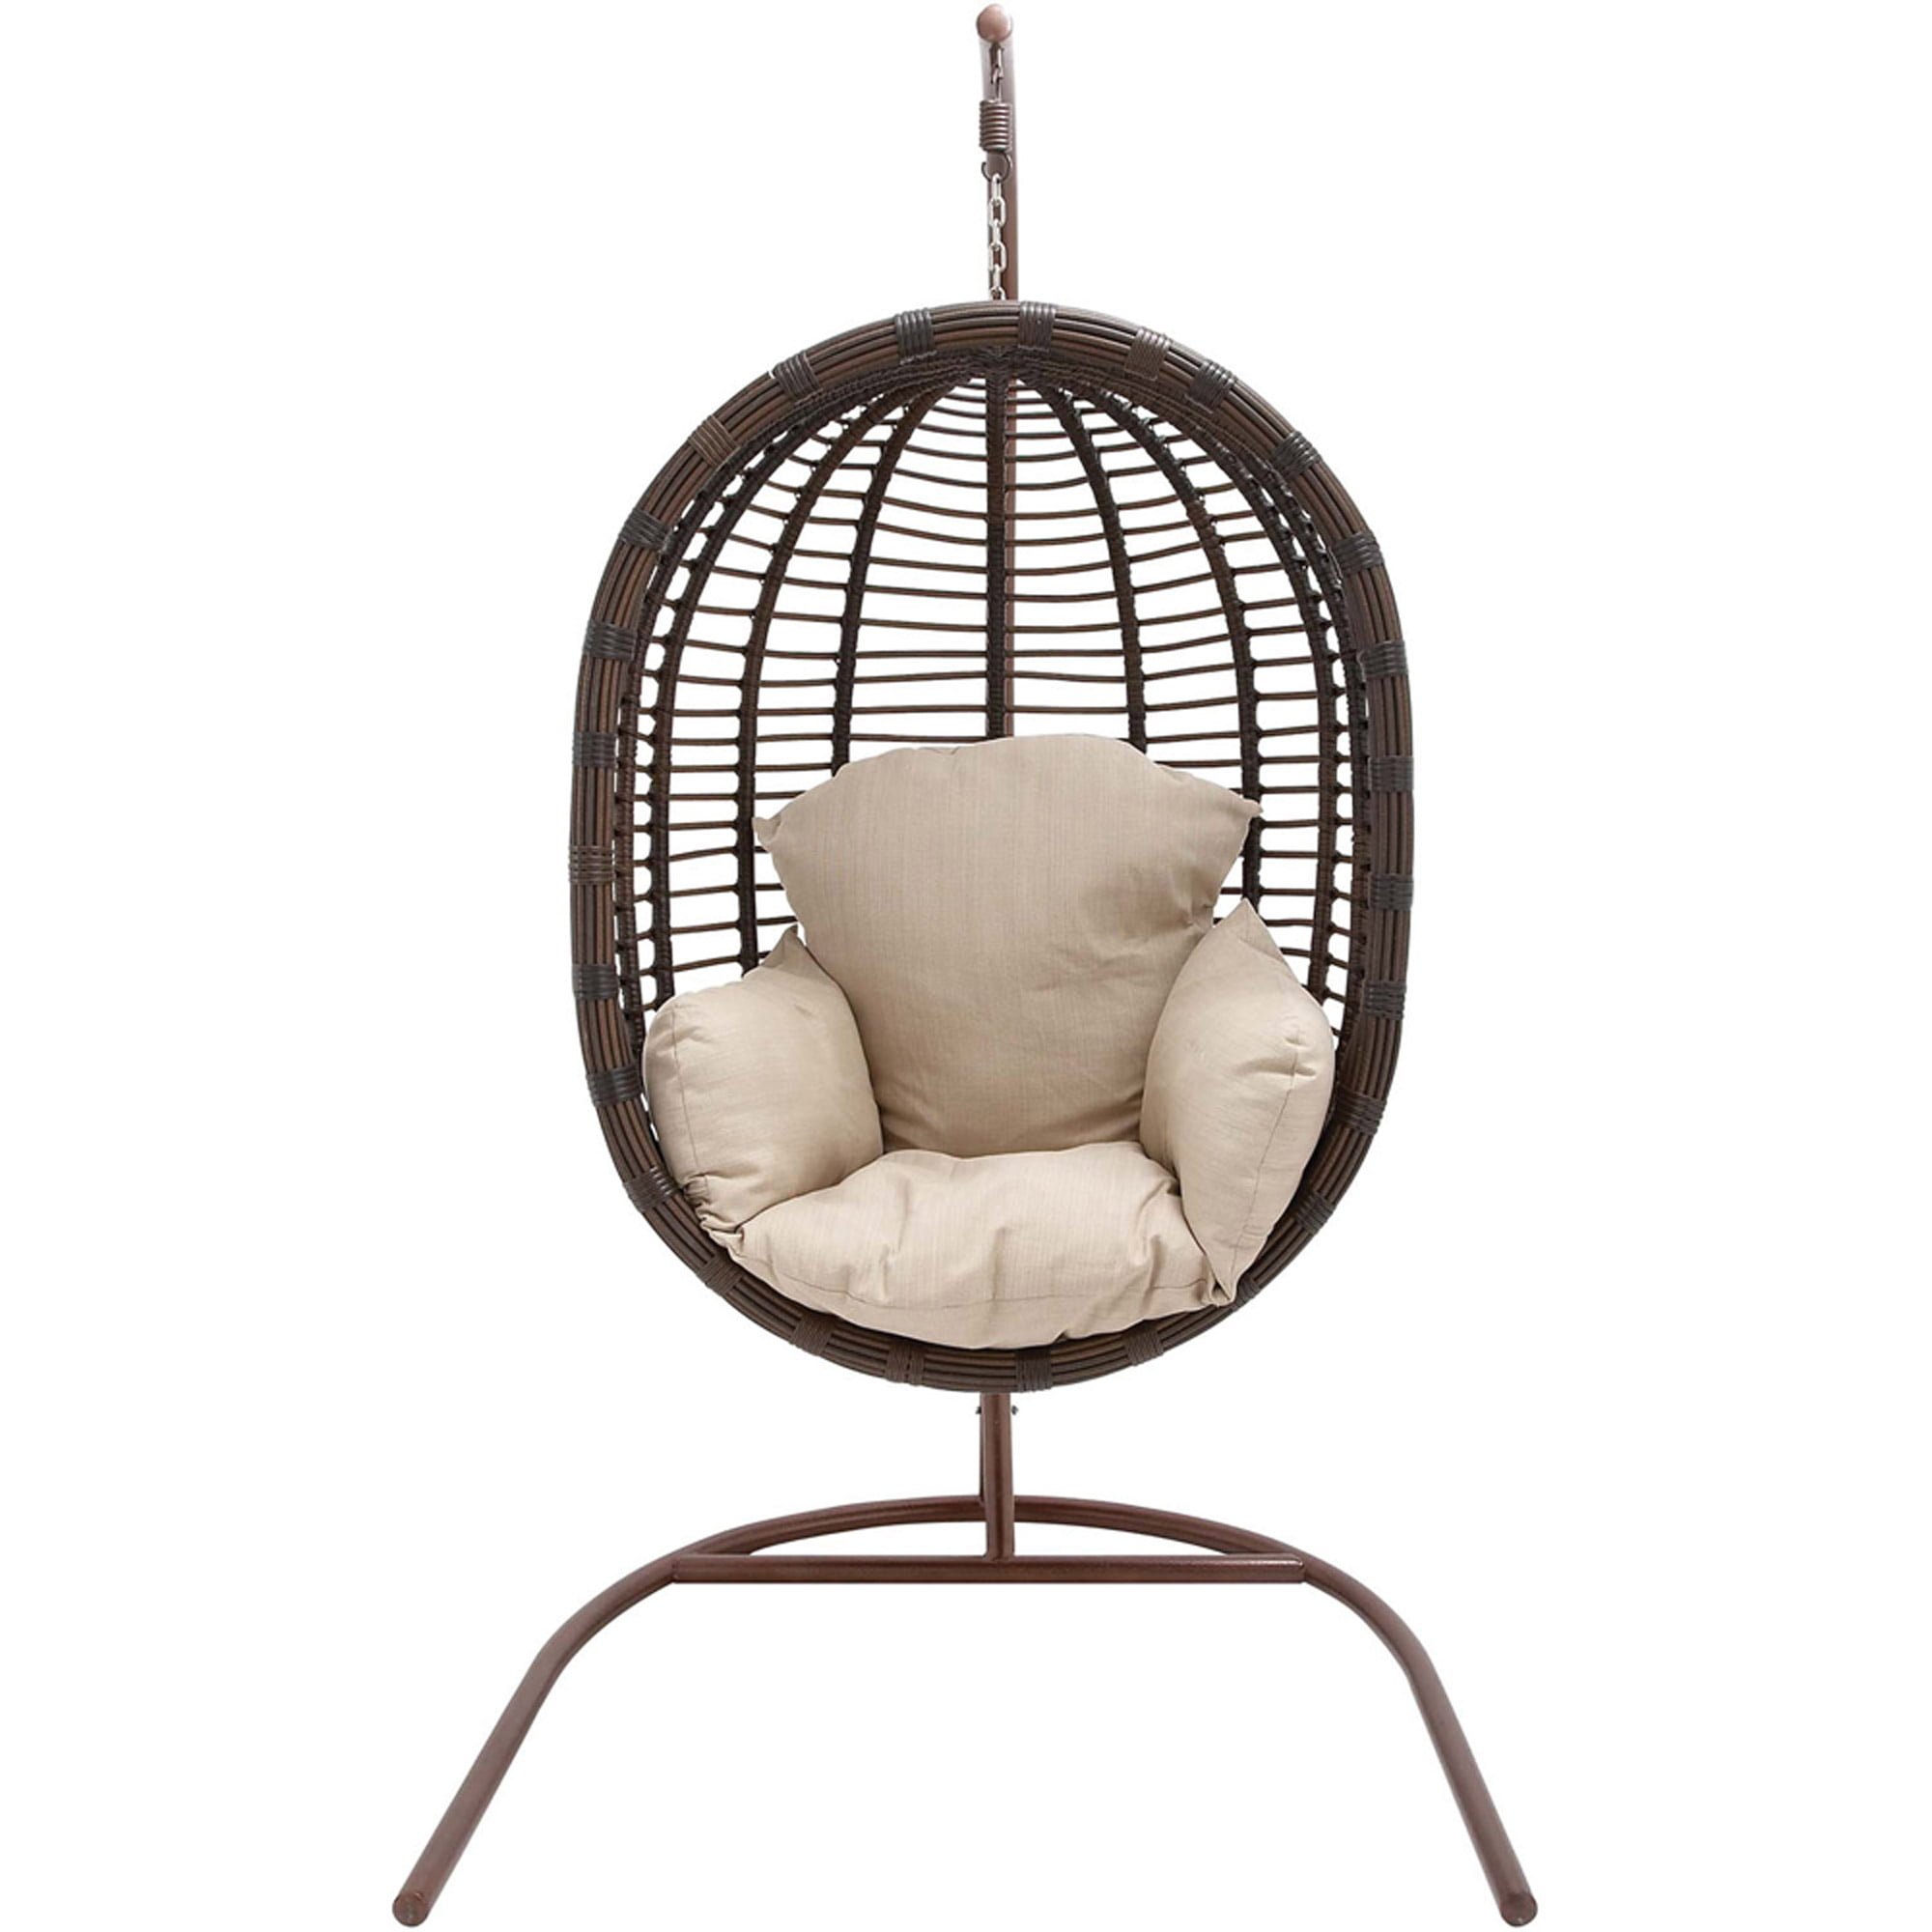 Ordinaire Hanover Outdoor Furniture Rattan Wicker Pod Swing Chair With Full Cream  Cushion   Walmart.com